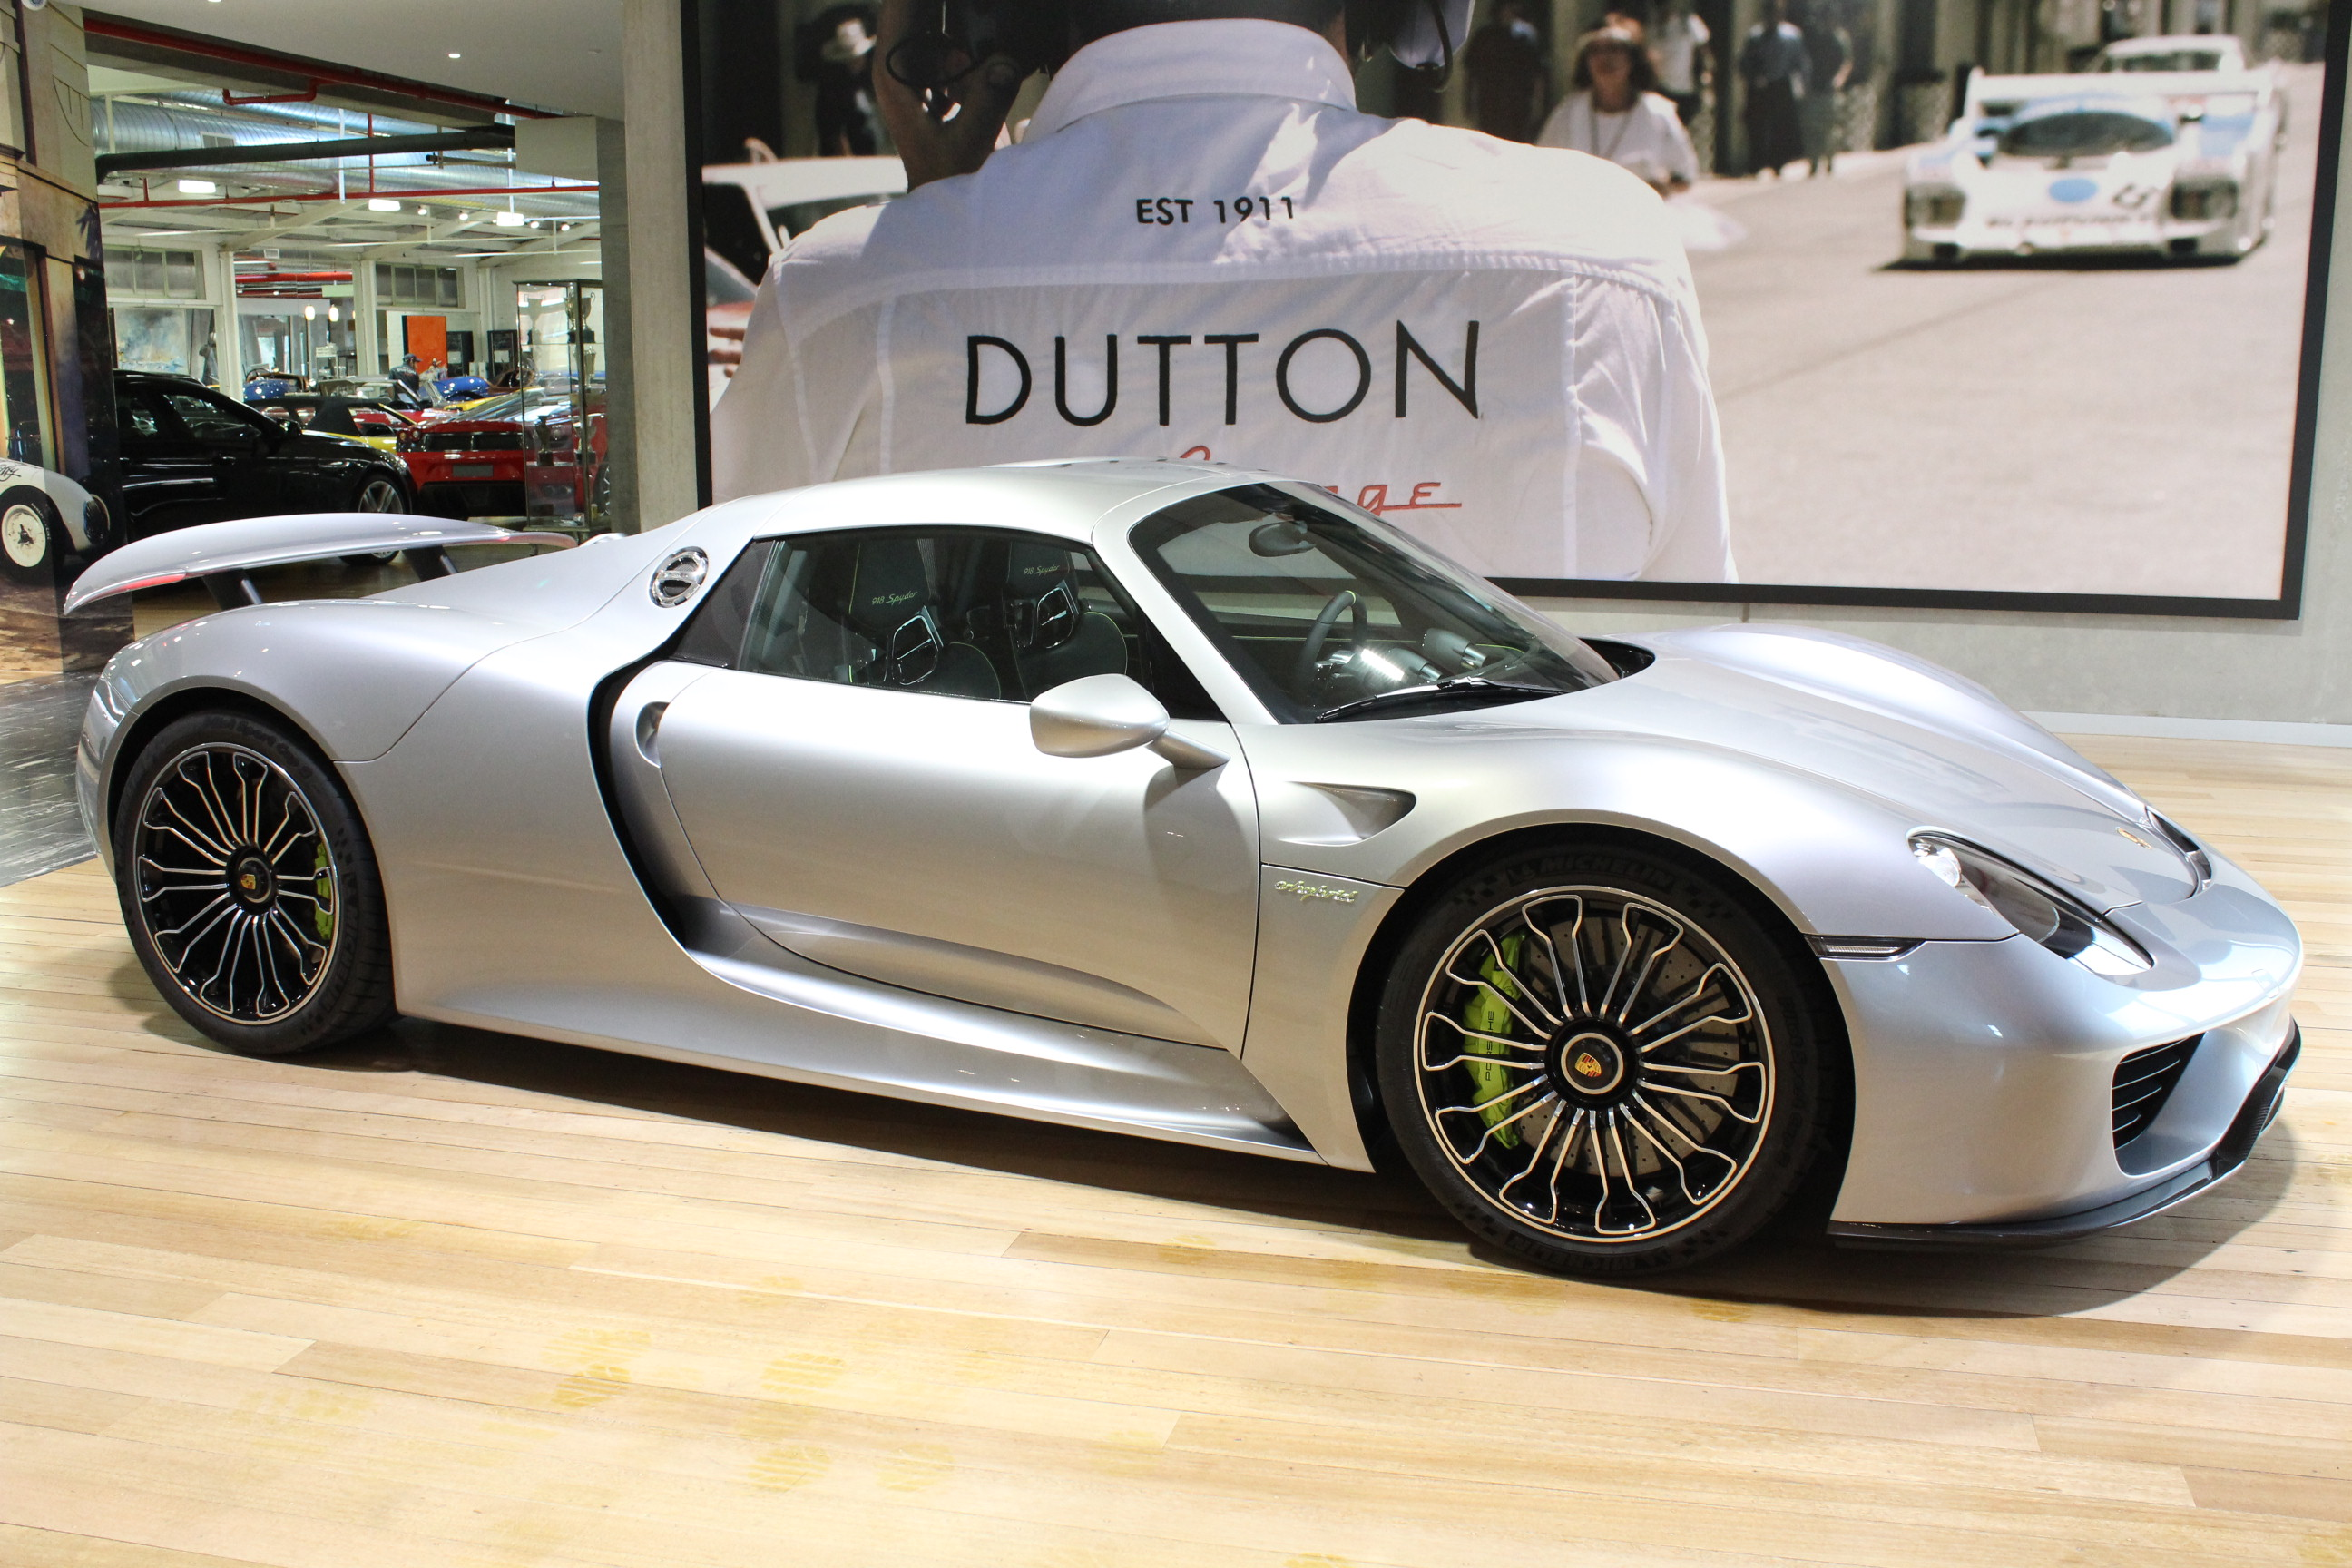 2015 Porsche 918 Spyder - Unique and rare cars sold at Dutton Garage, Australia's premier prestige, luxury and classic car dealer.